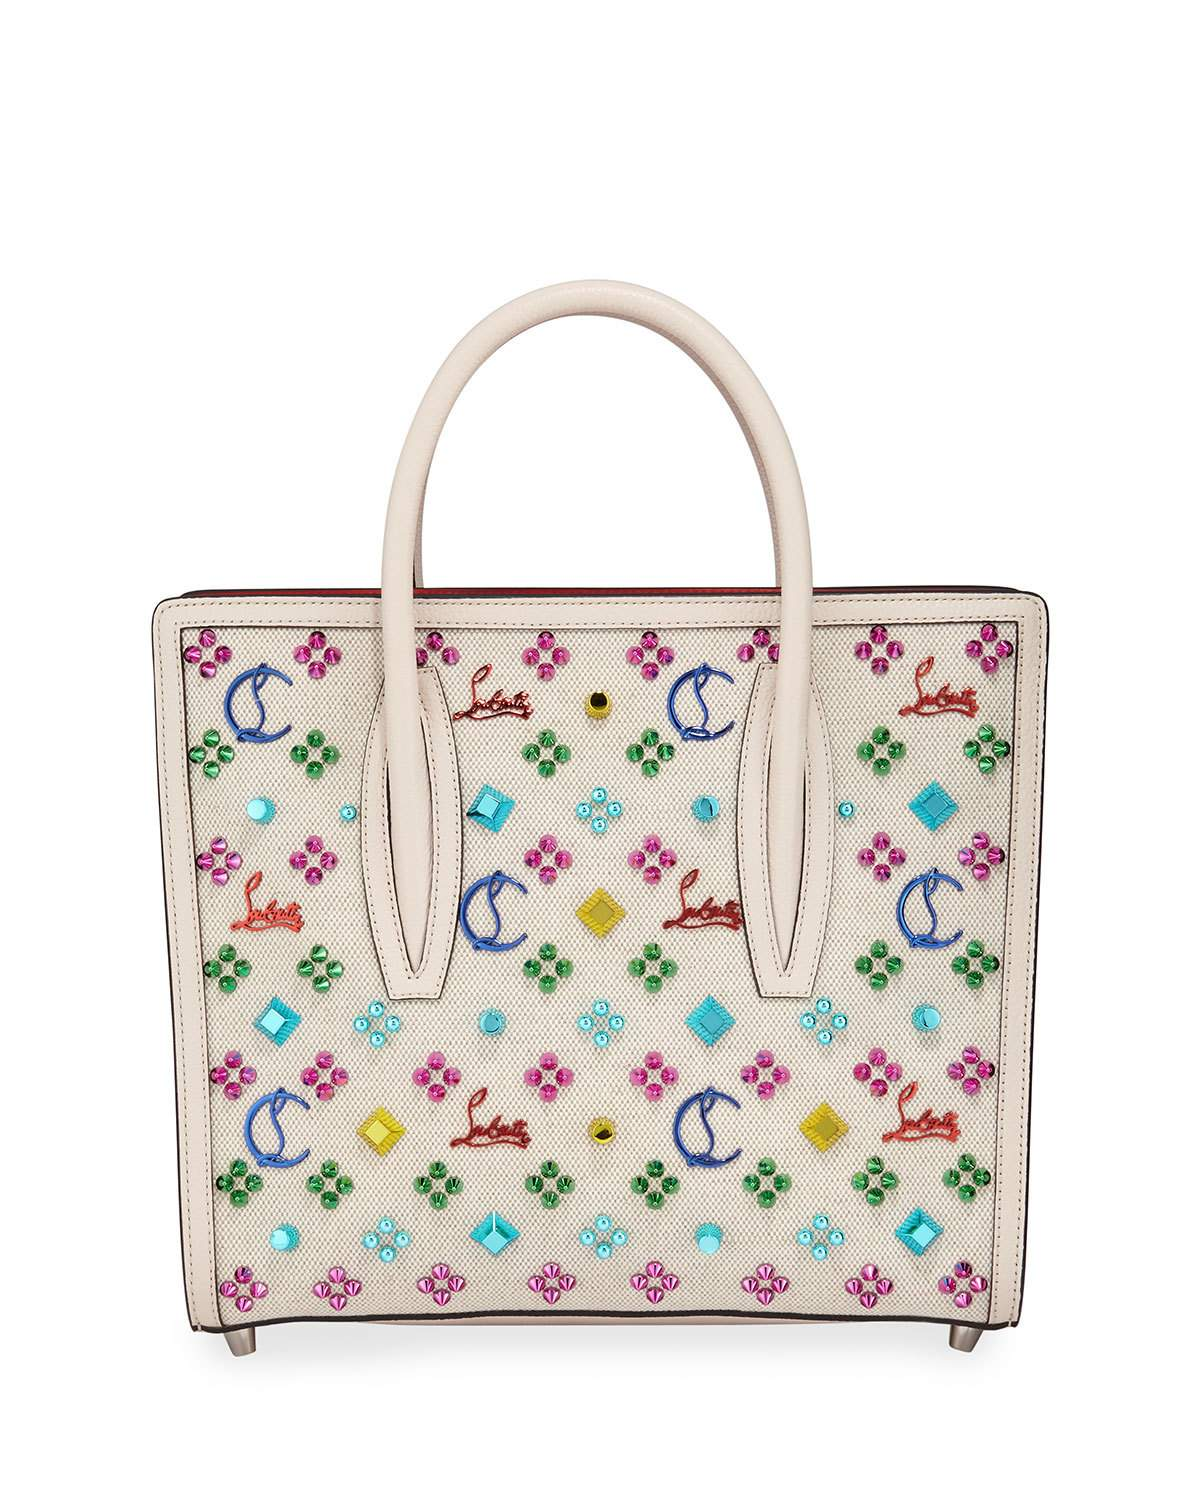 f2bb59d160fe Christian LouboutinPaloma Medium Canvas Tote Bag $2,690.00 Free Shipping +  Free Returns WHITE PATTERN Expected to ship no later than 09/13/2019  Pre-Order